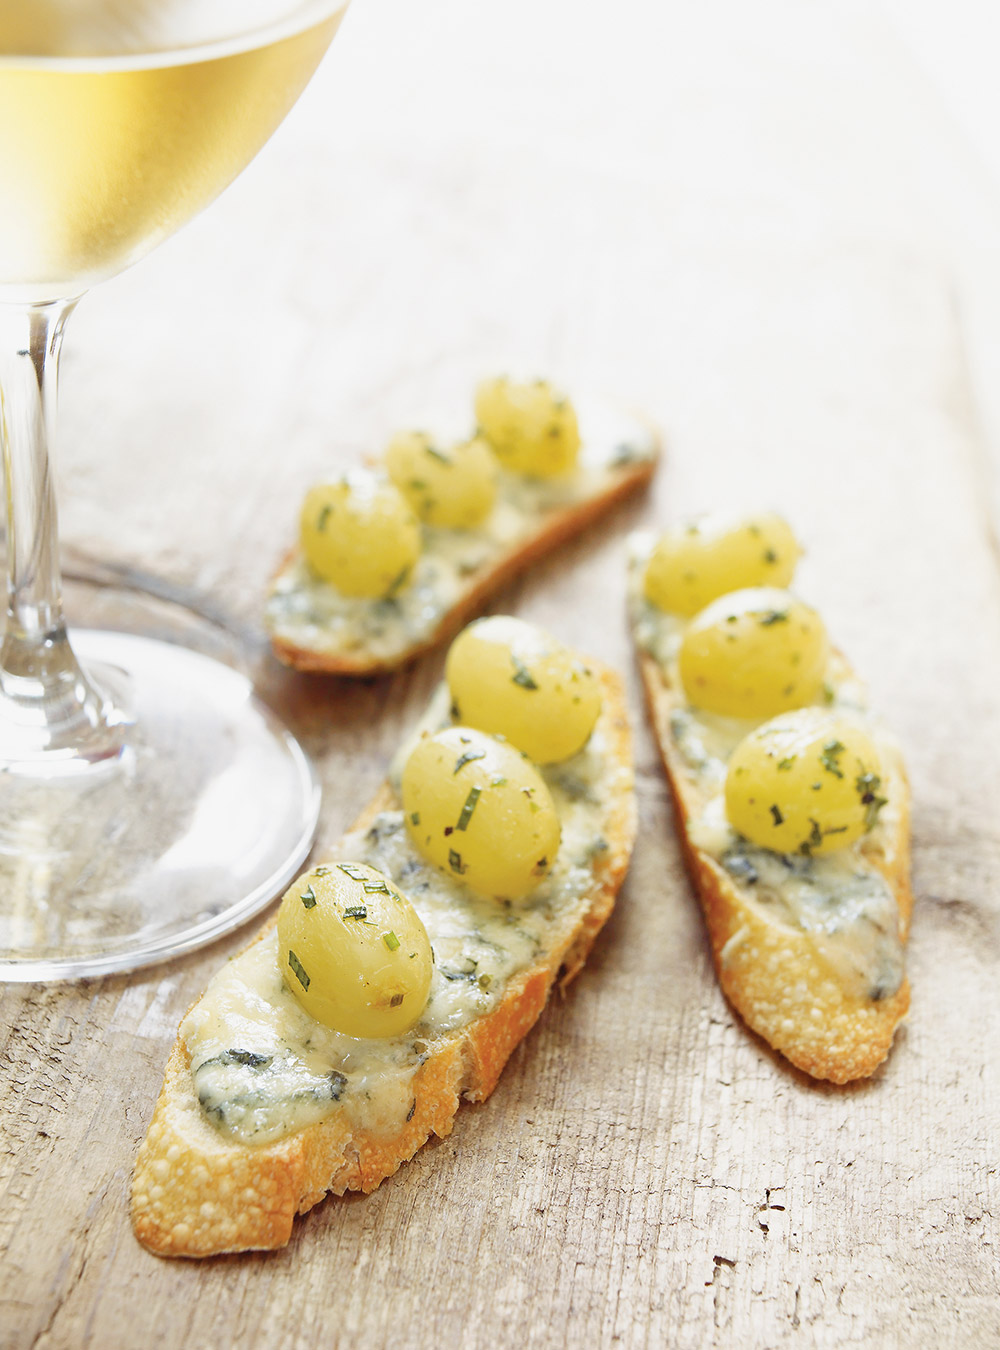 Grape confit and roquefort canap s ricardo for Canape aperitif